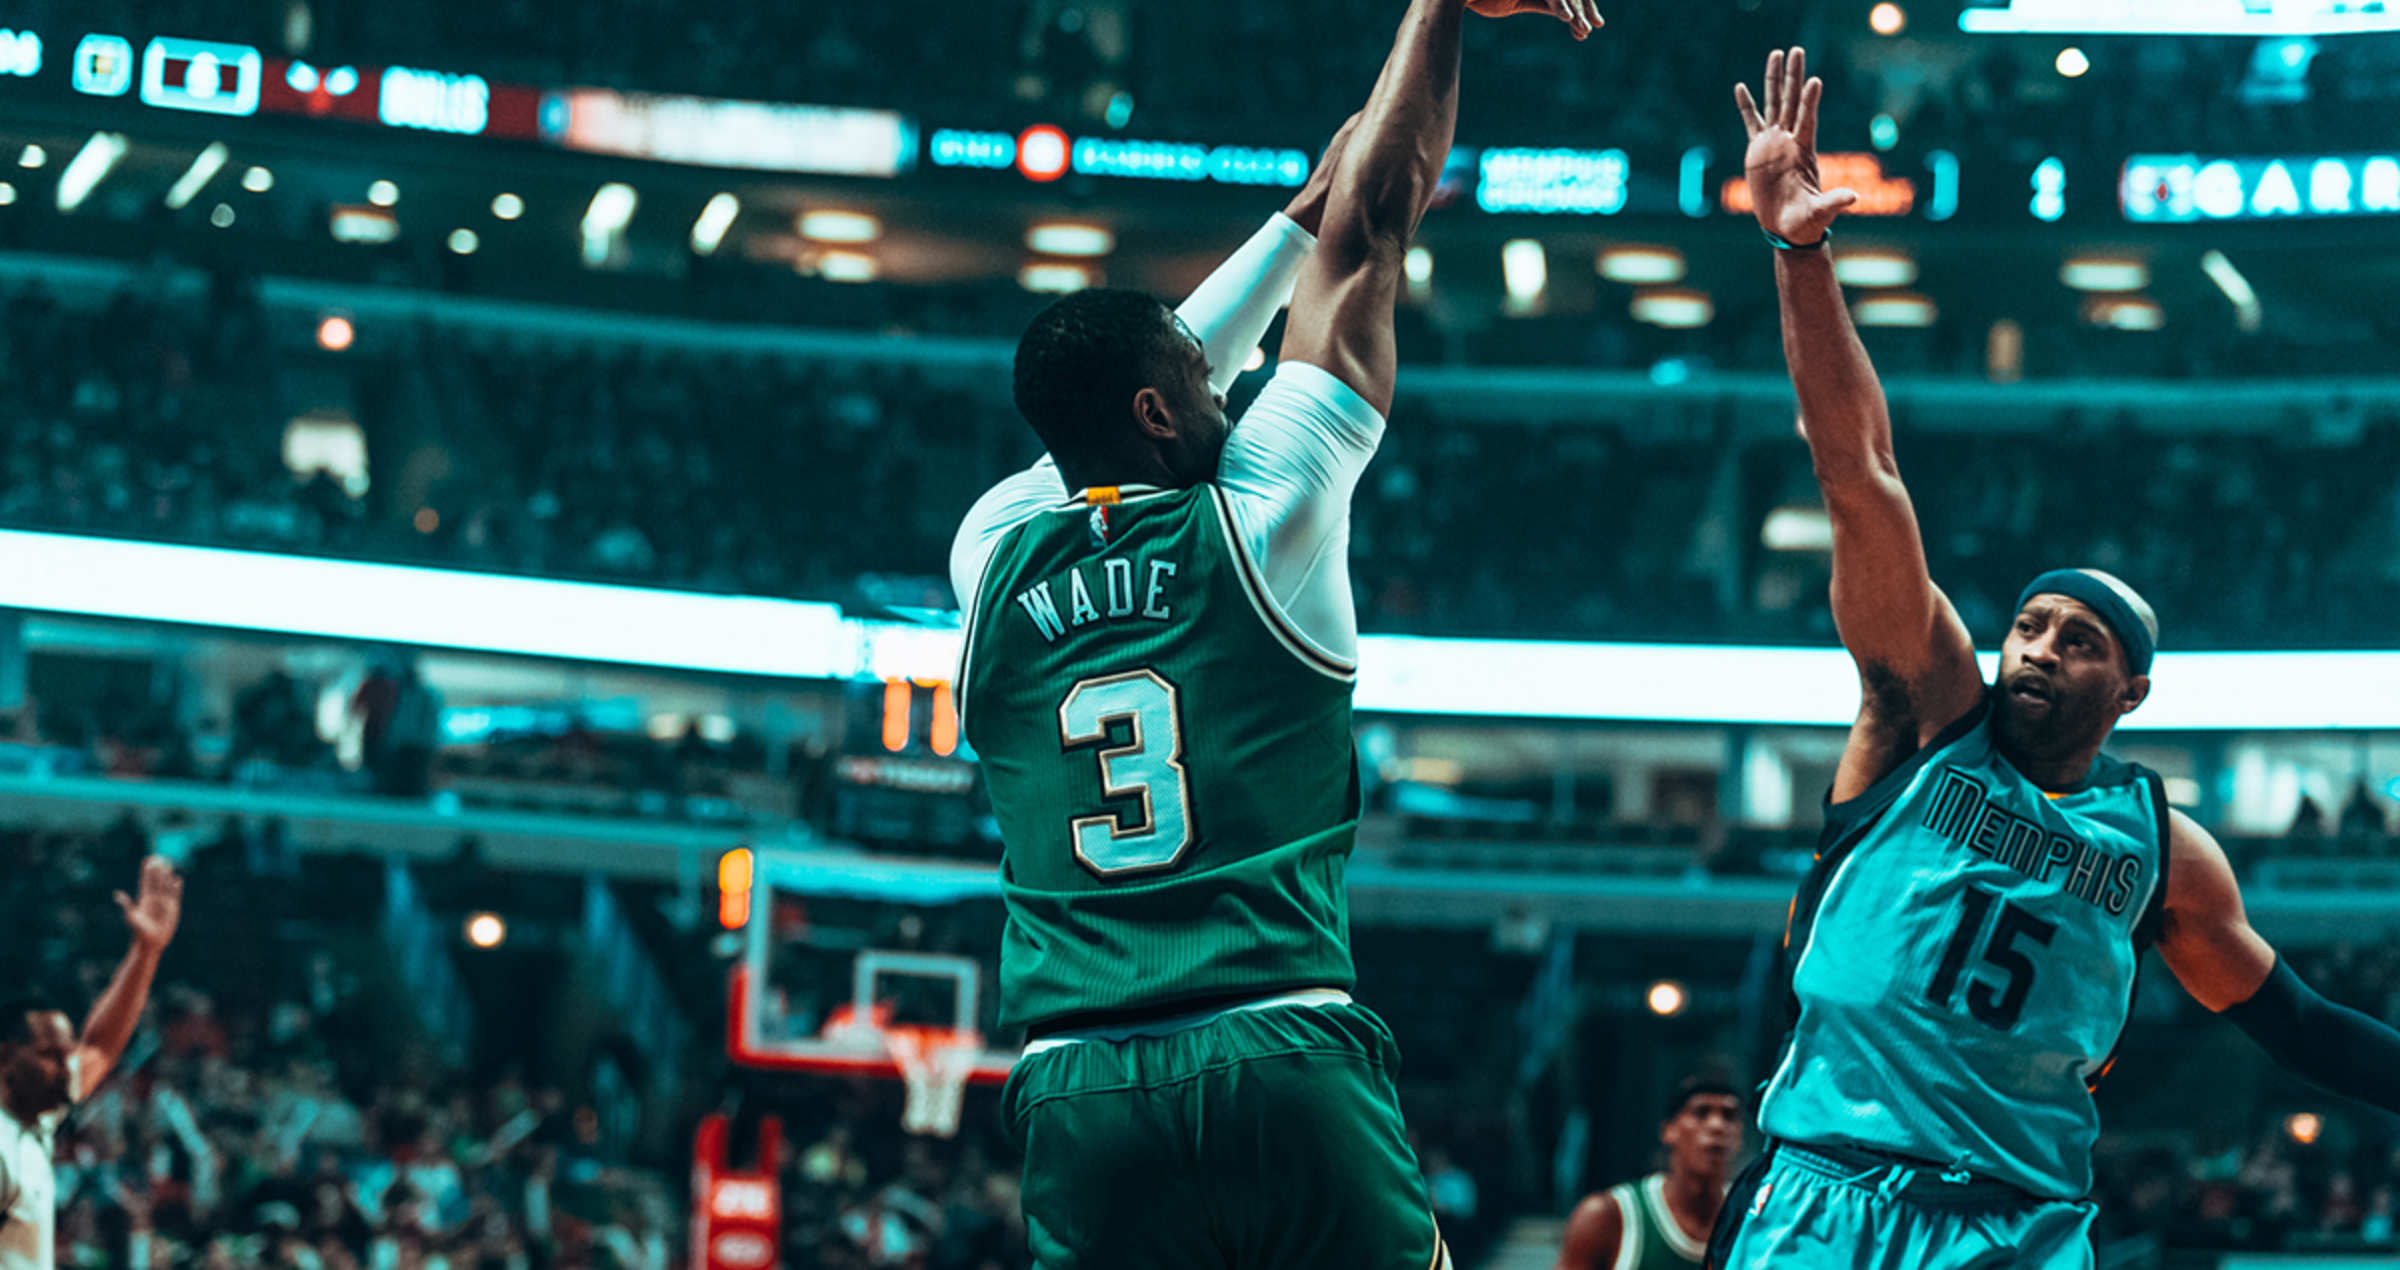 Bulls look ahead at rest of season without Dwyane Wade  fe0184c57